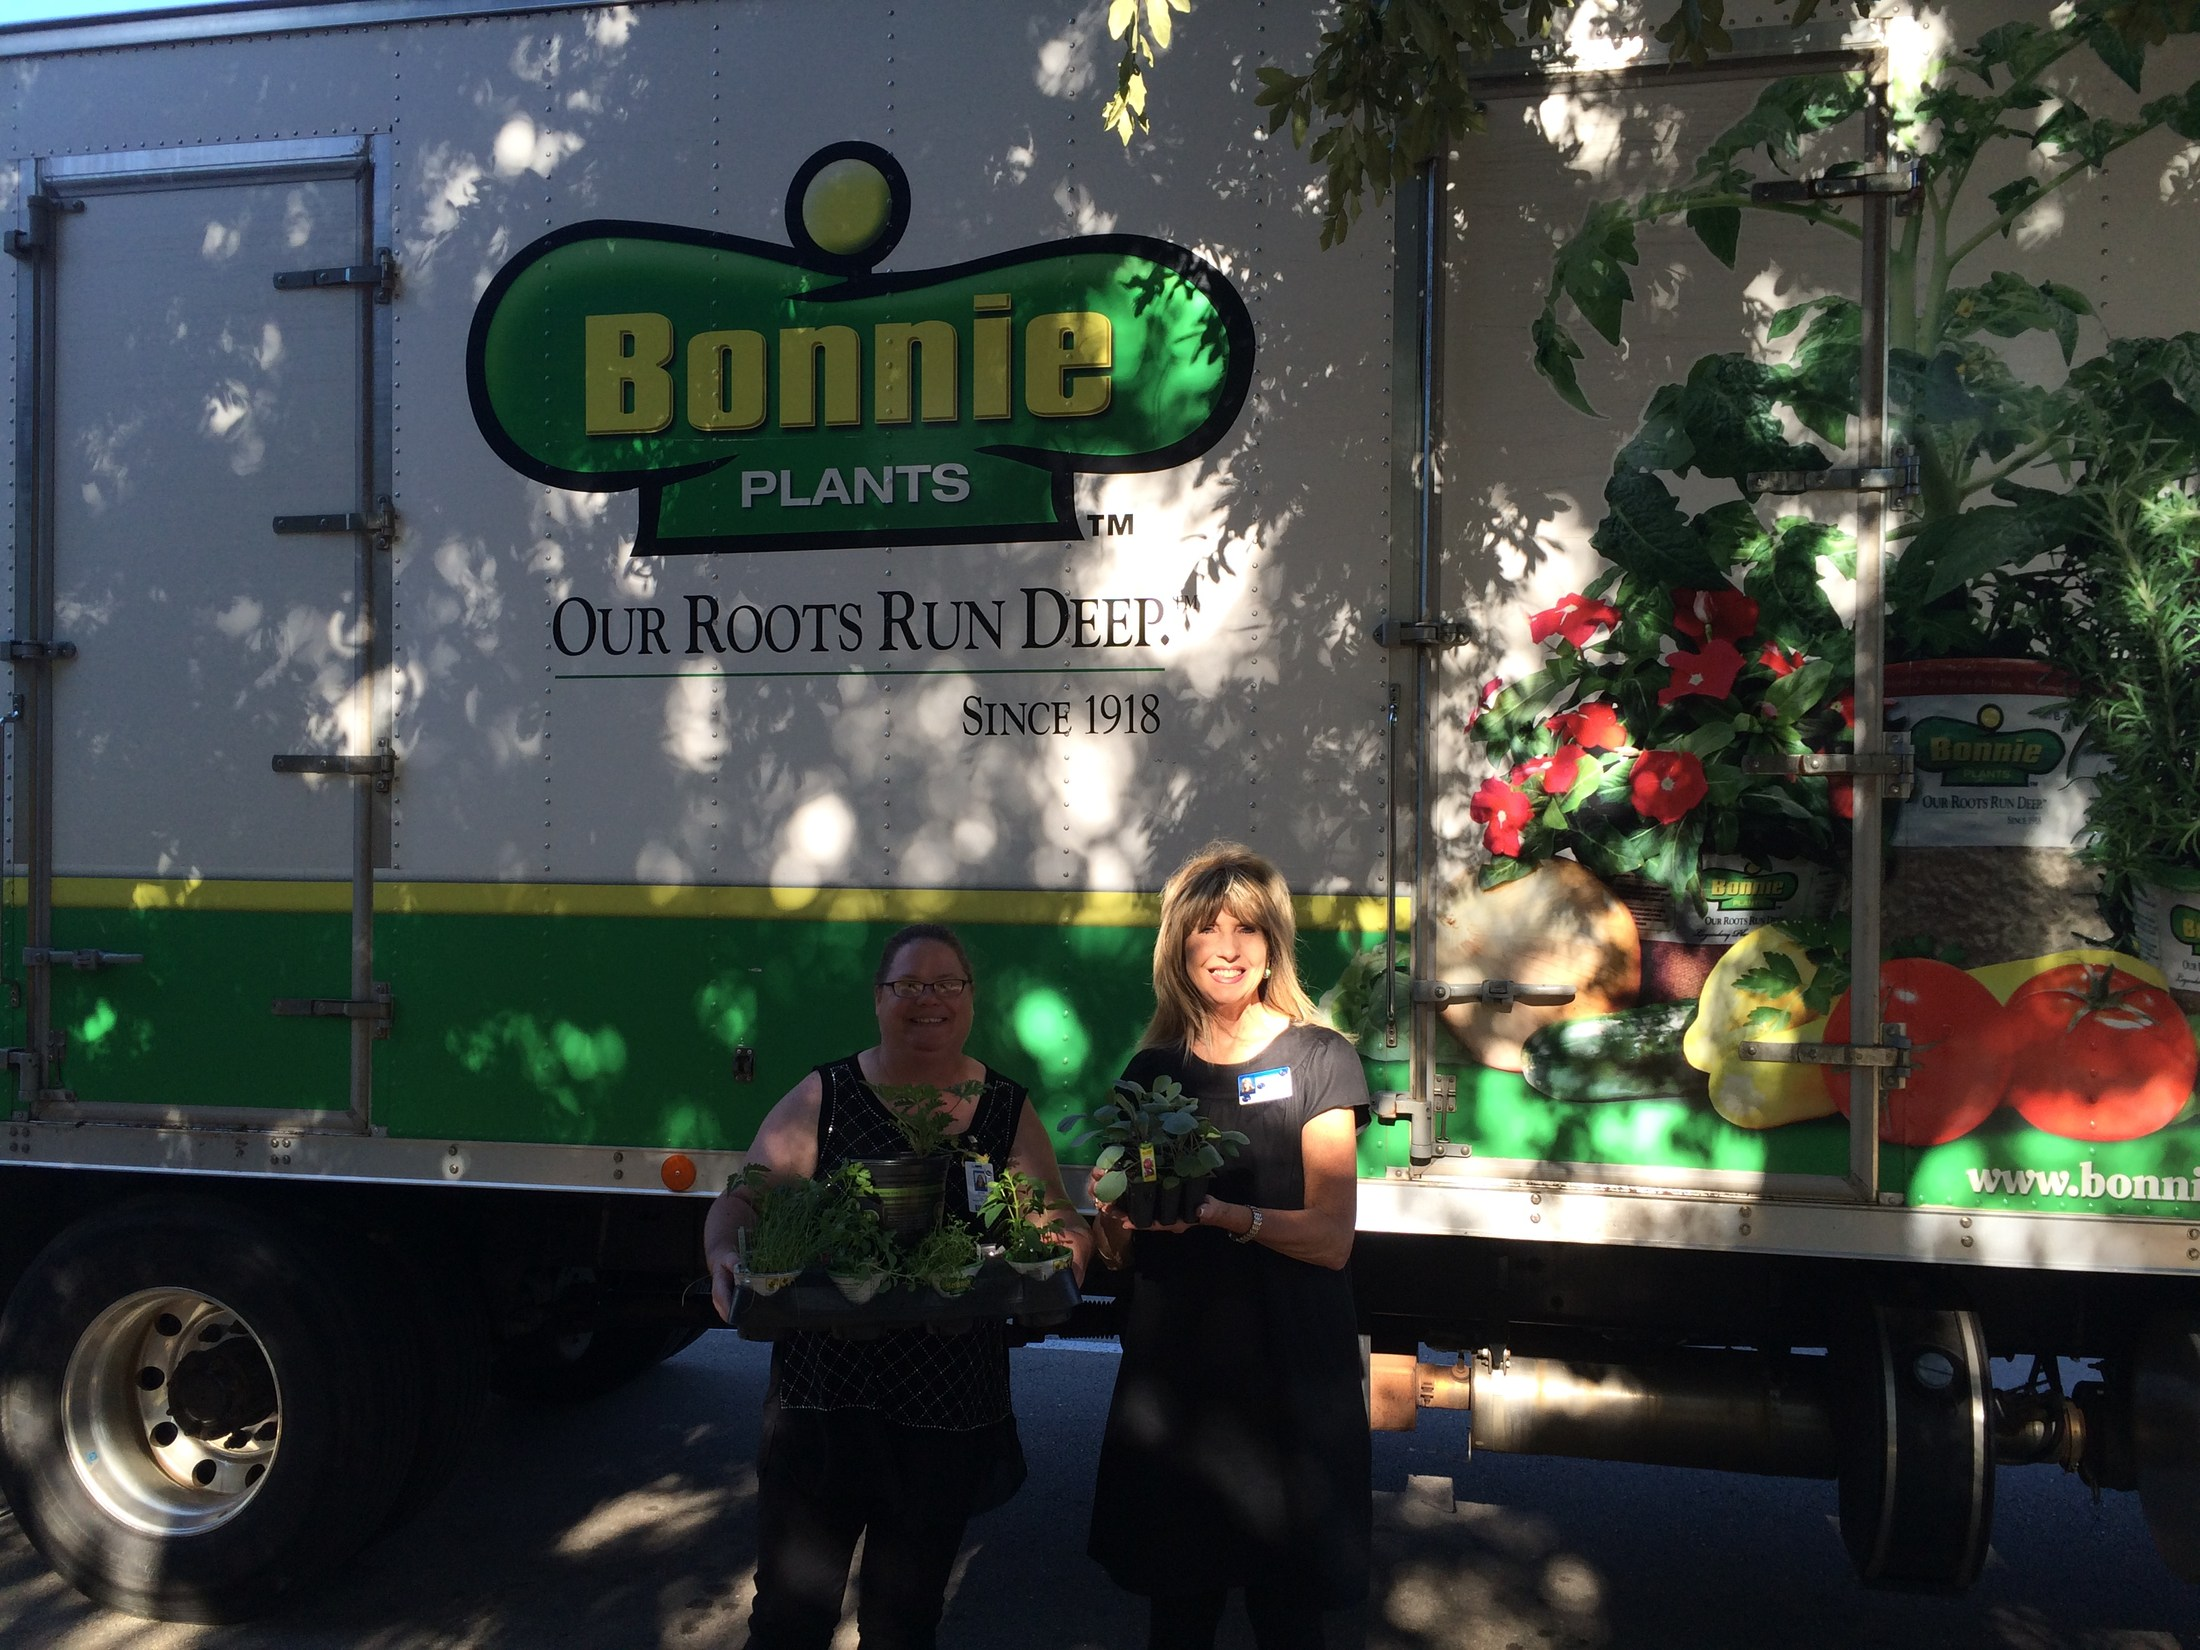 Bonnie Plants donates cabbages